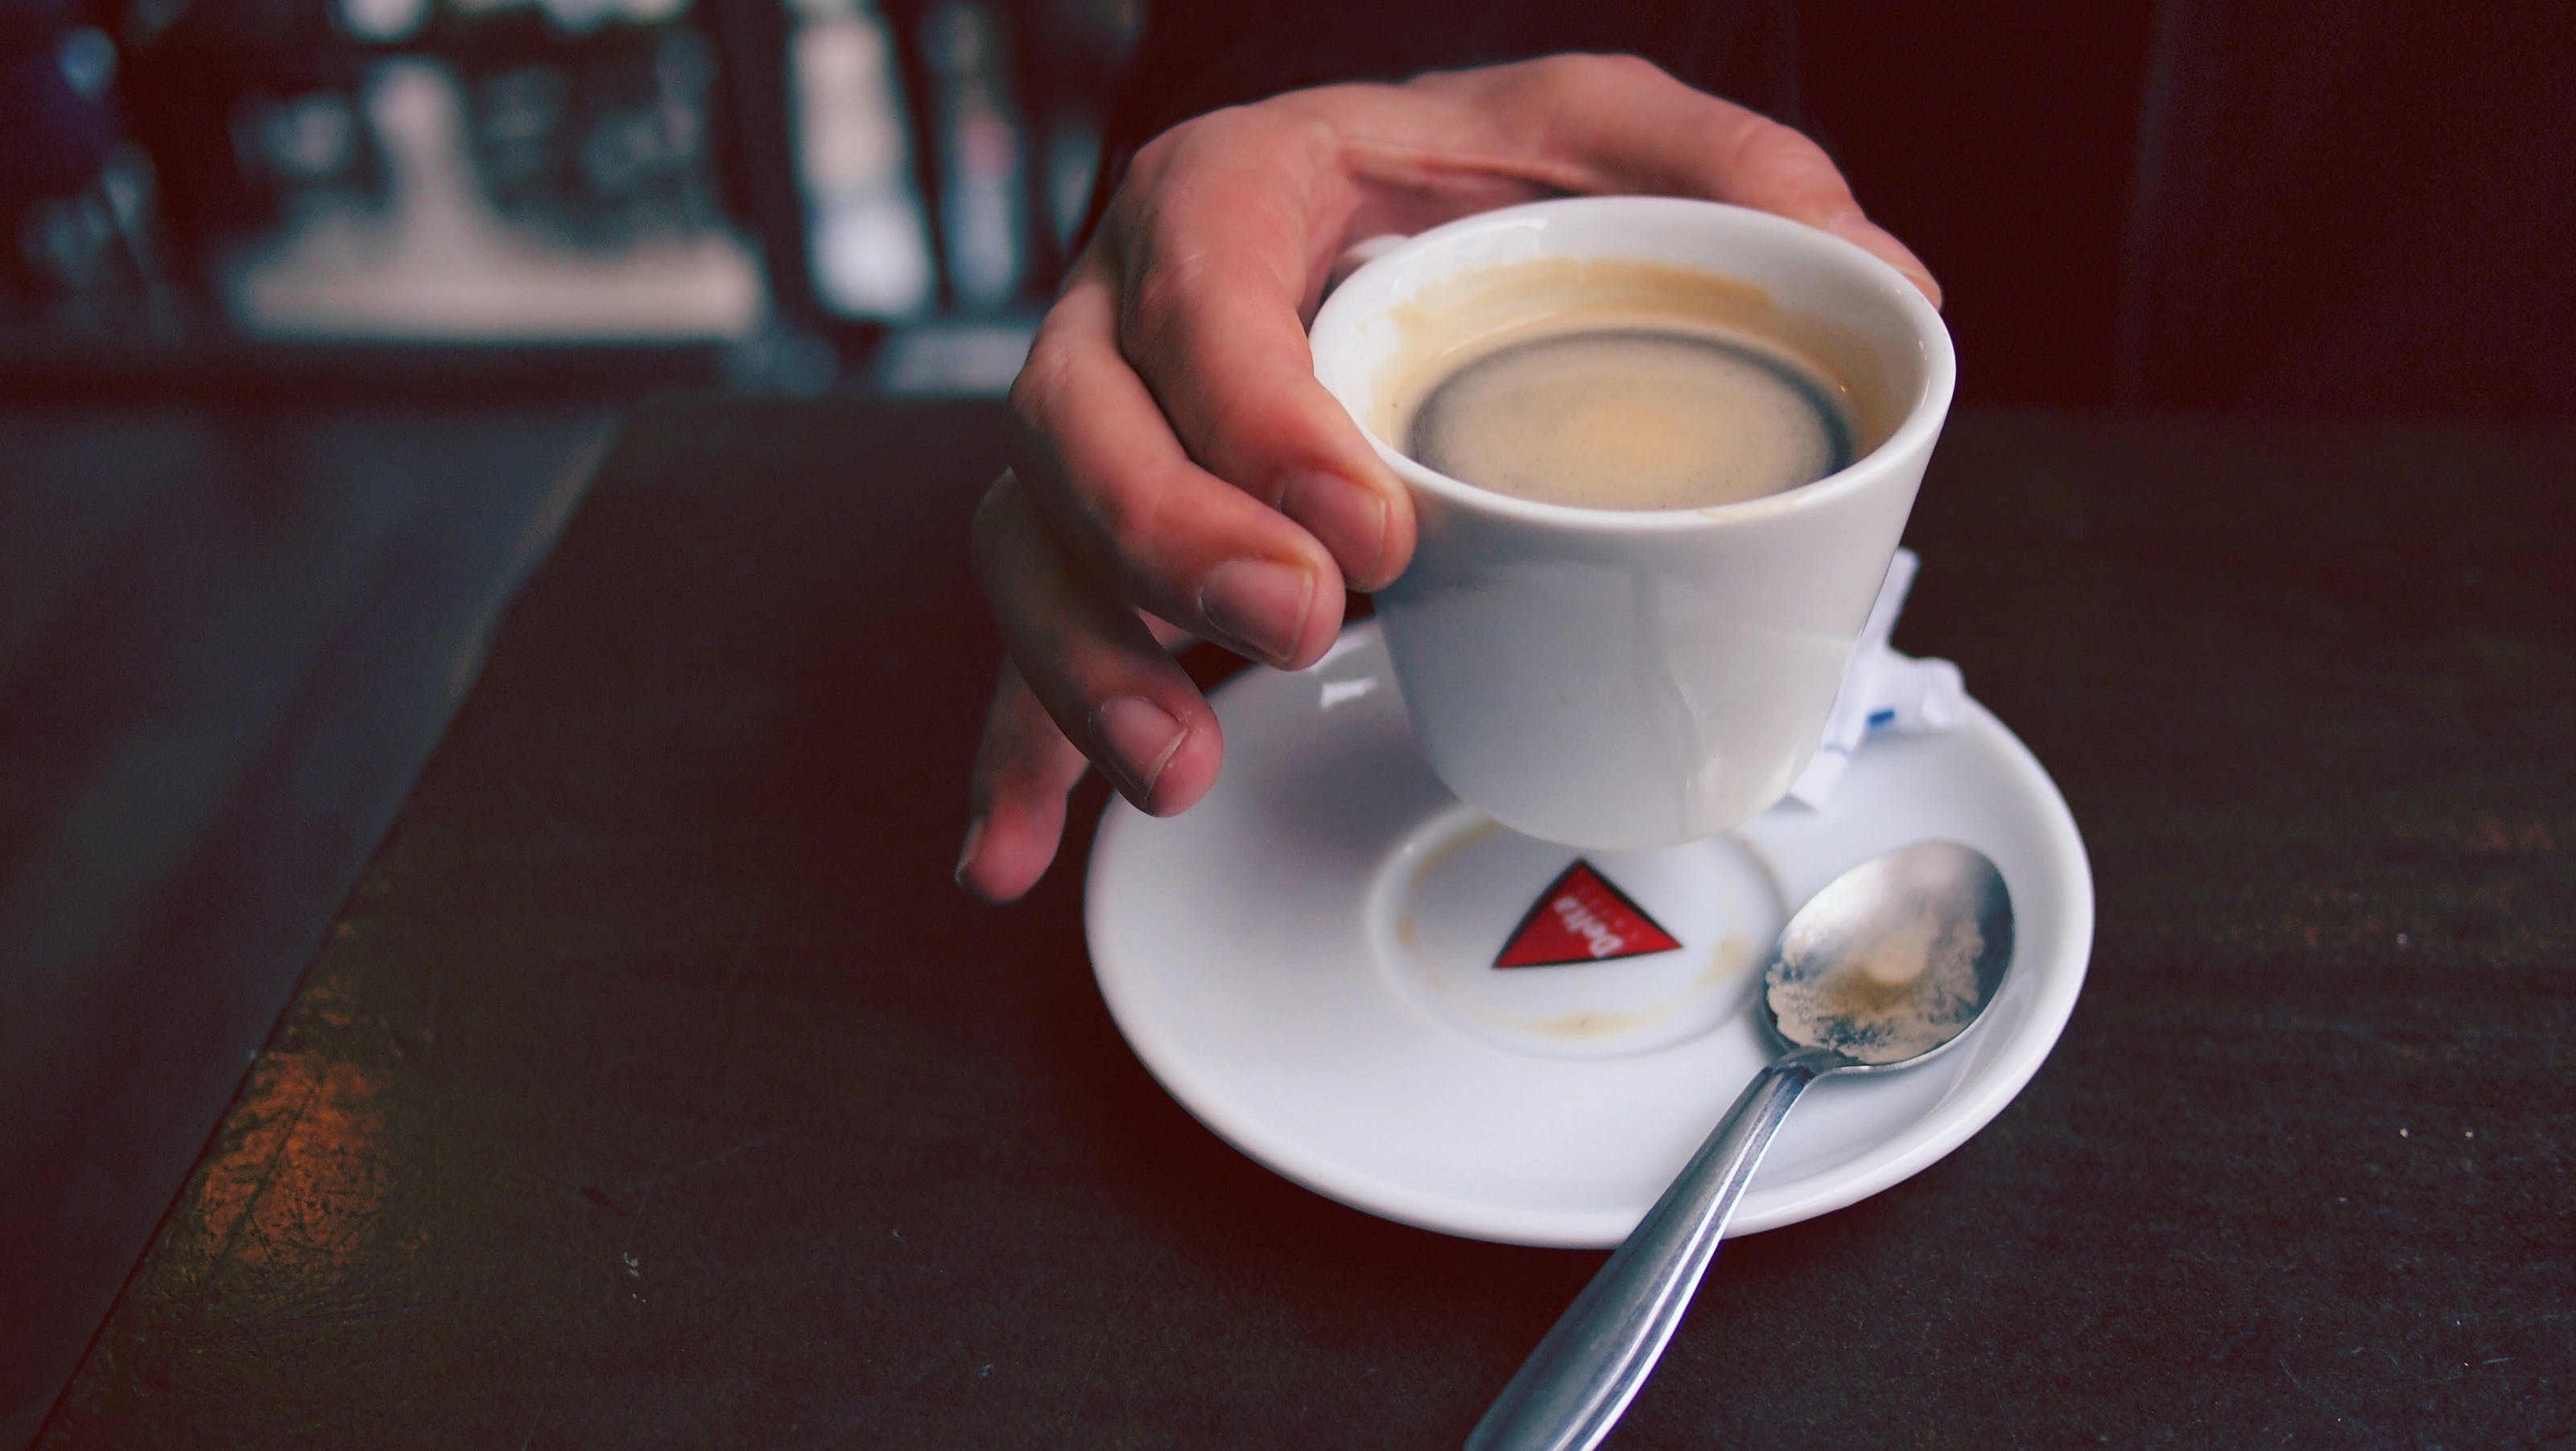 Free stock photo of caffeine, coffee, cup, hand